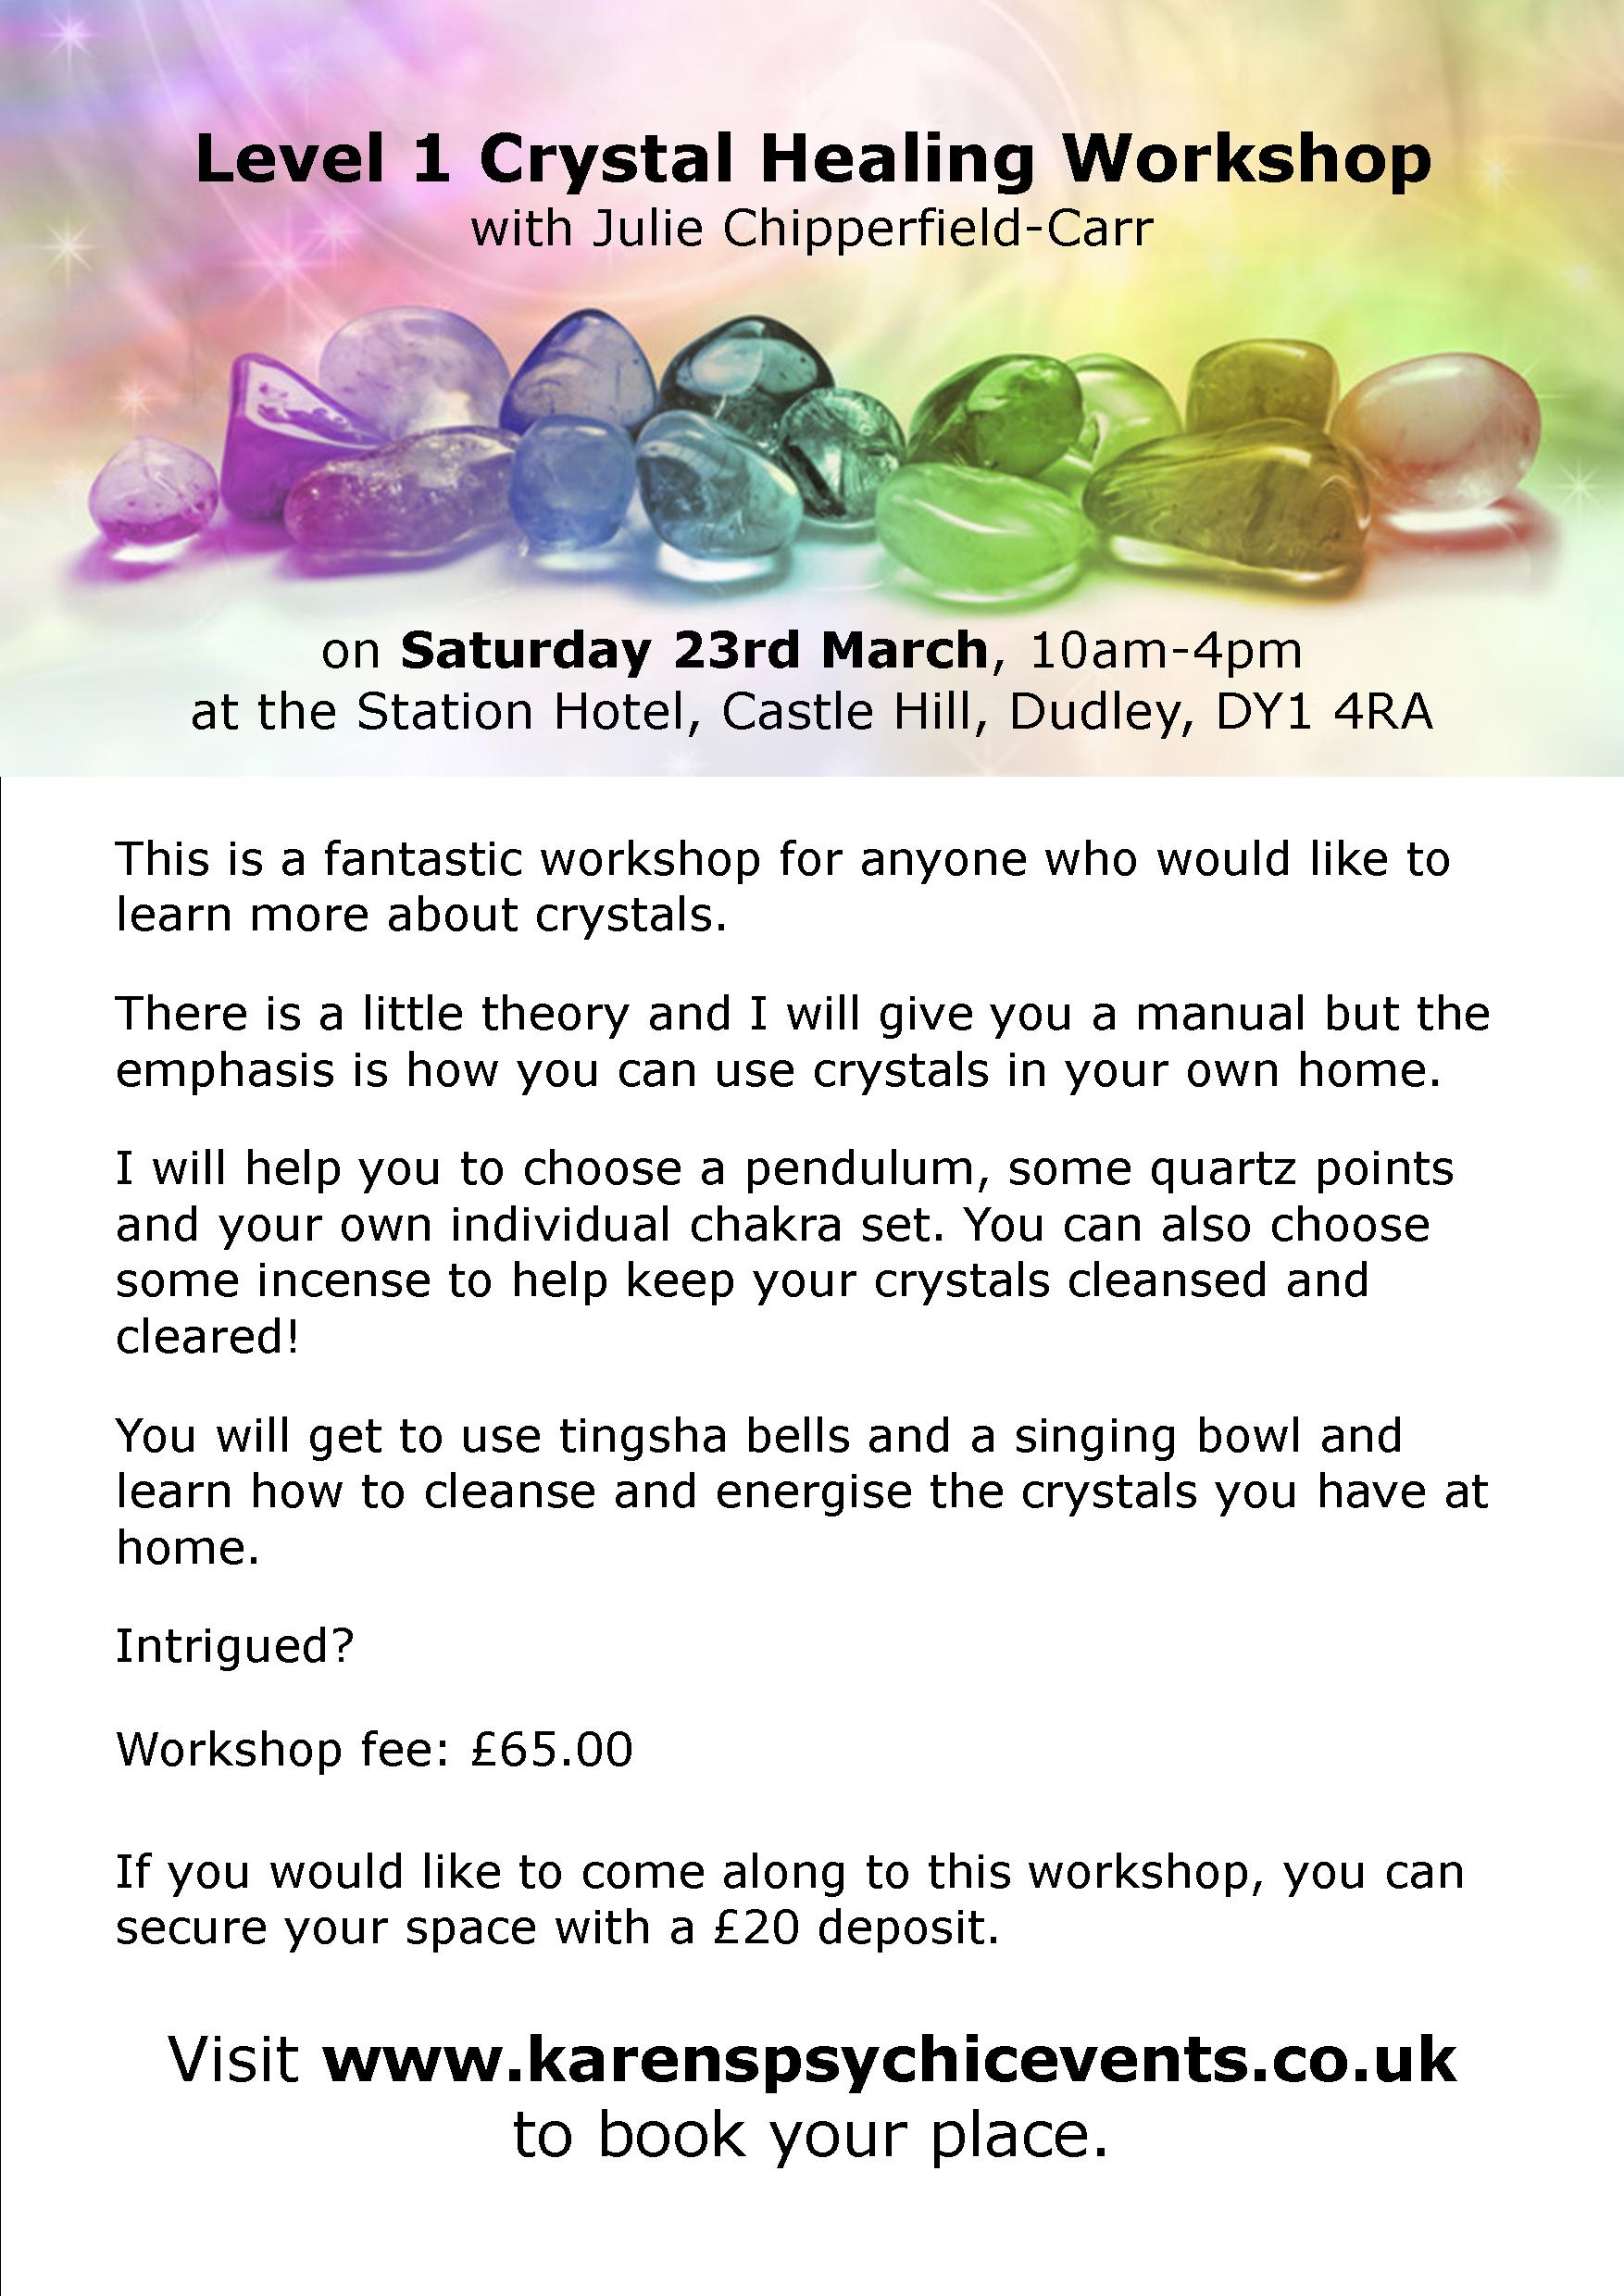 Level 1 Crystal Healing Workshop on 23rd March